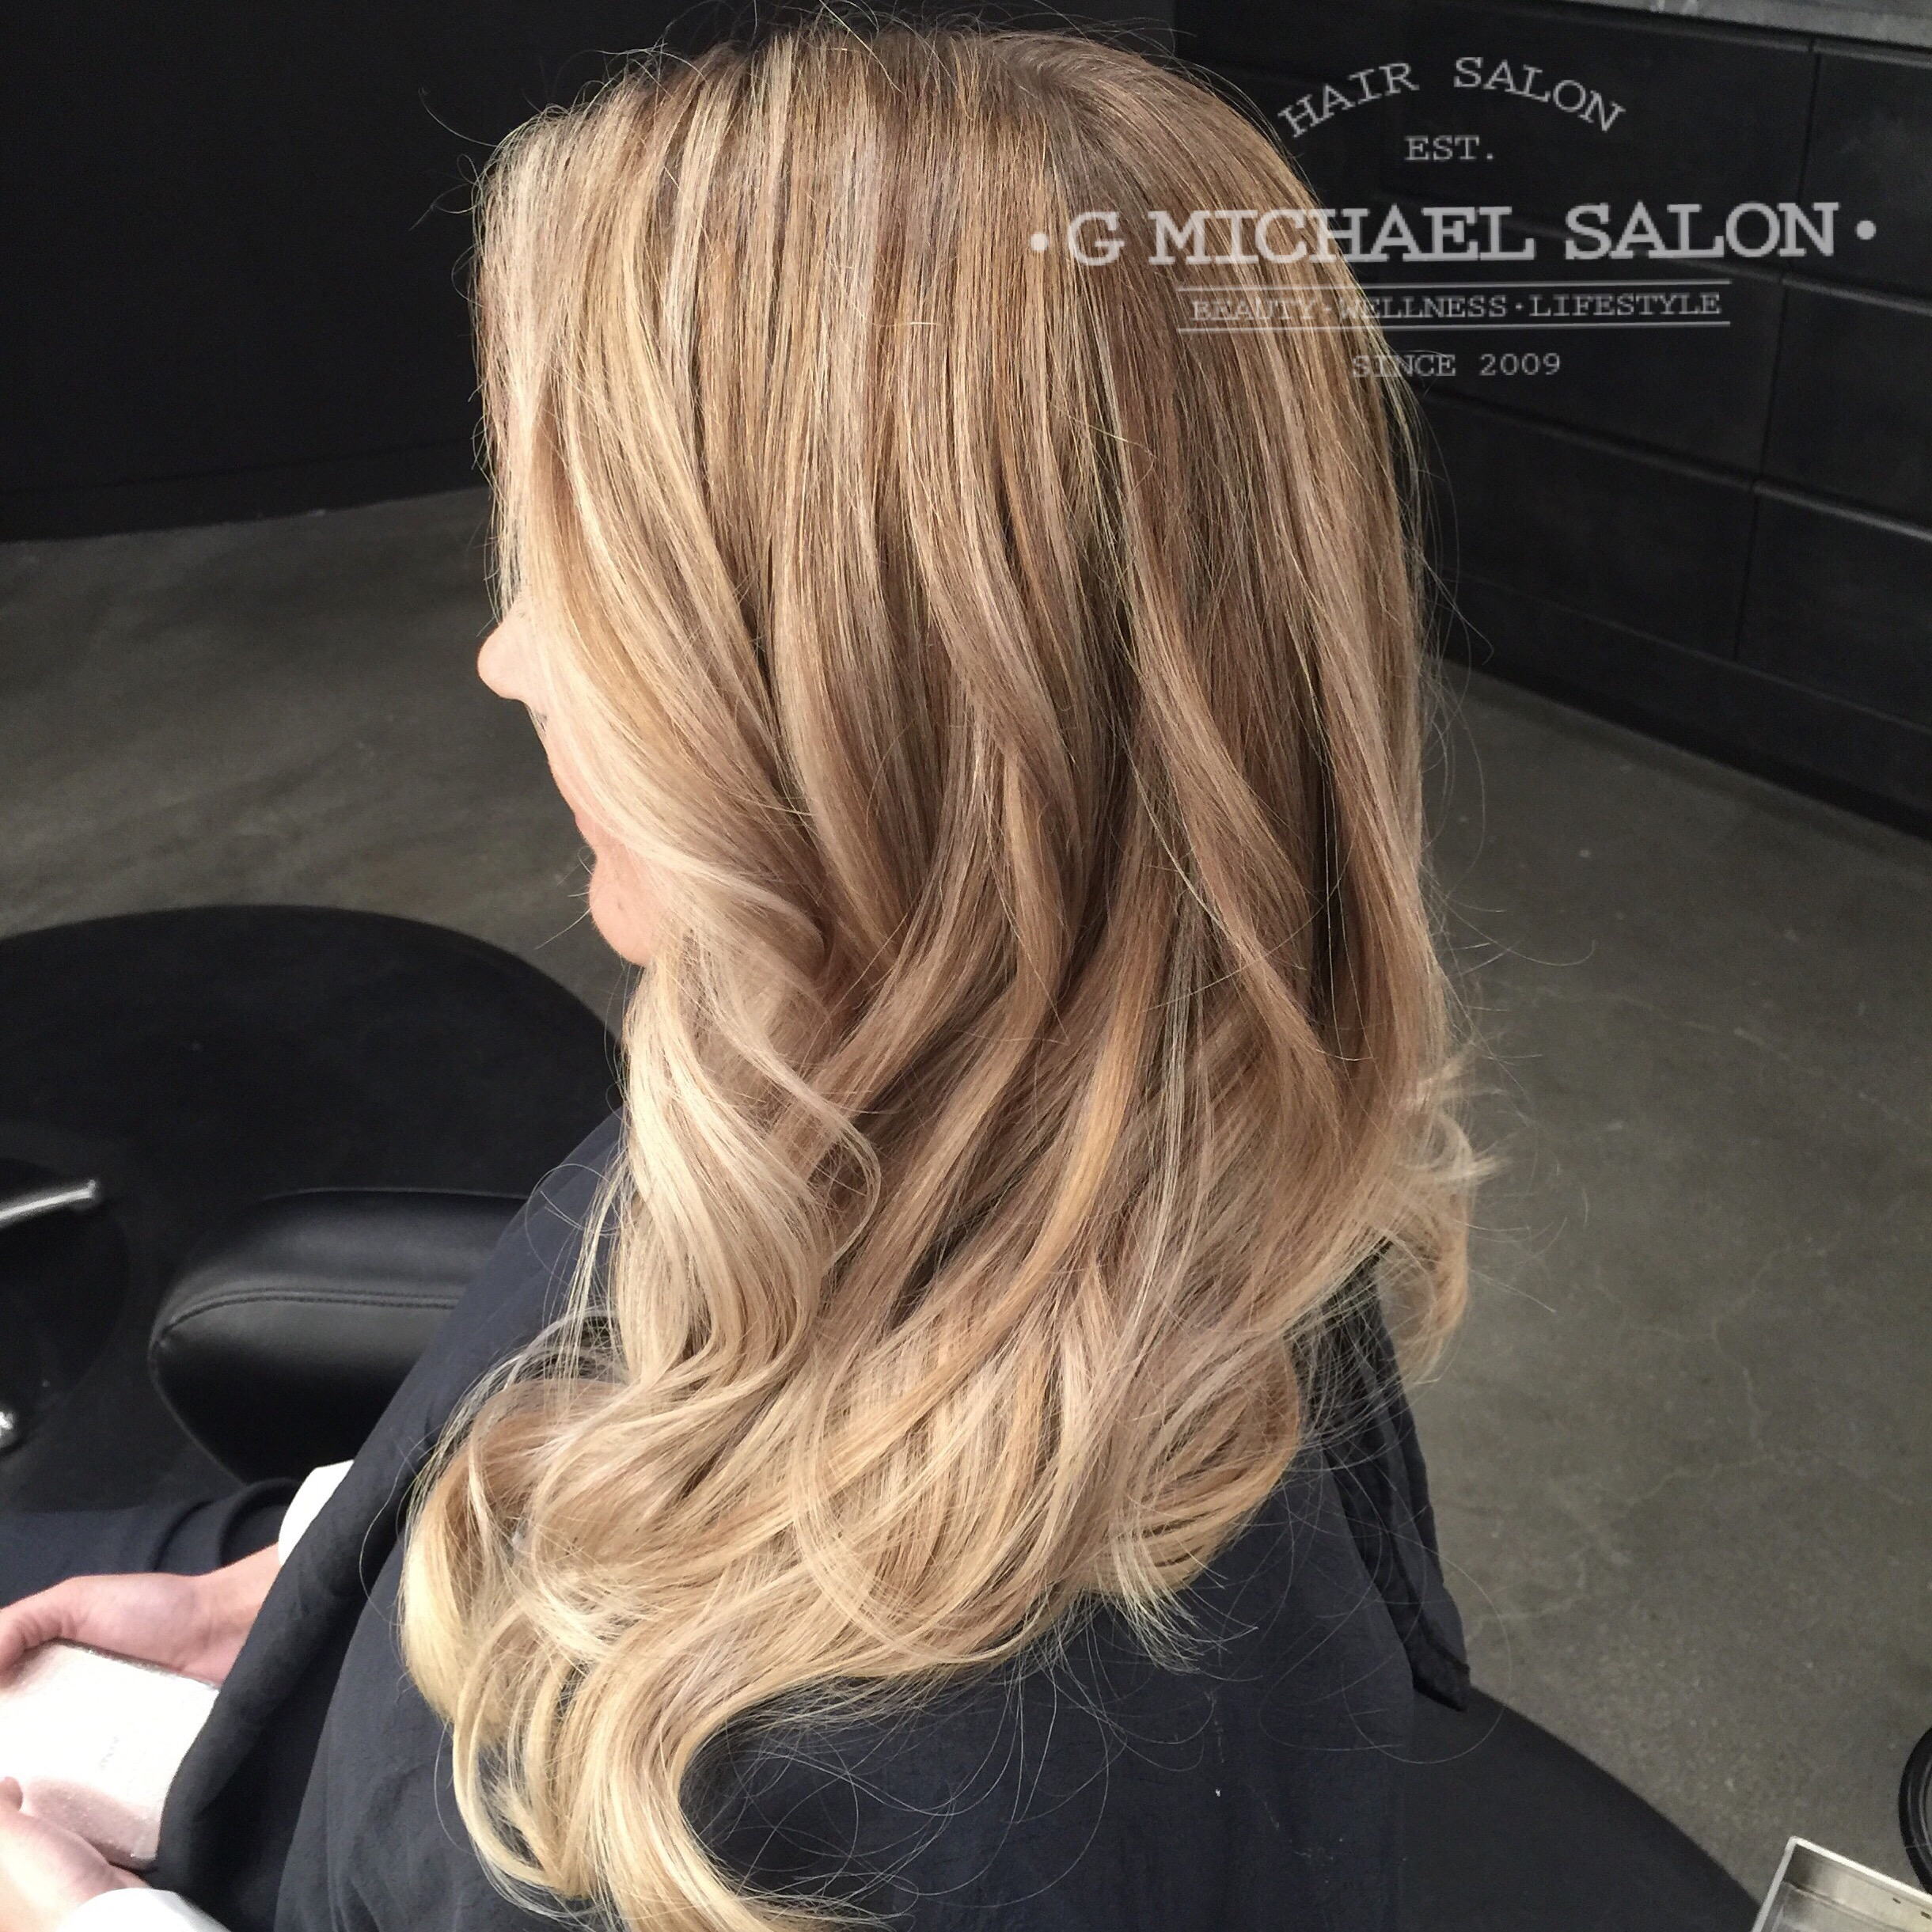 Best Indianapolis Hair Salons for Balayage \u2013 G Michael